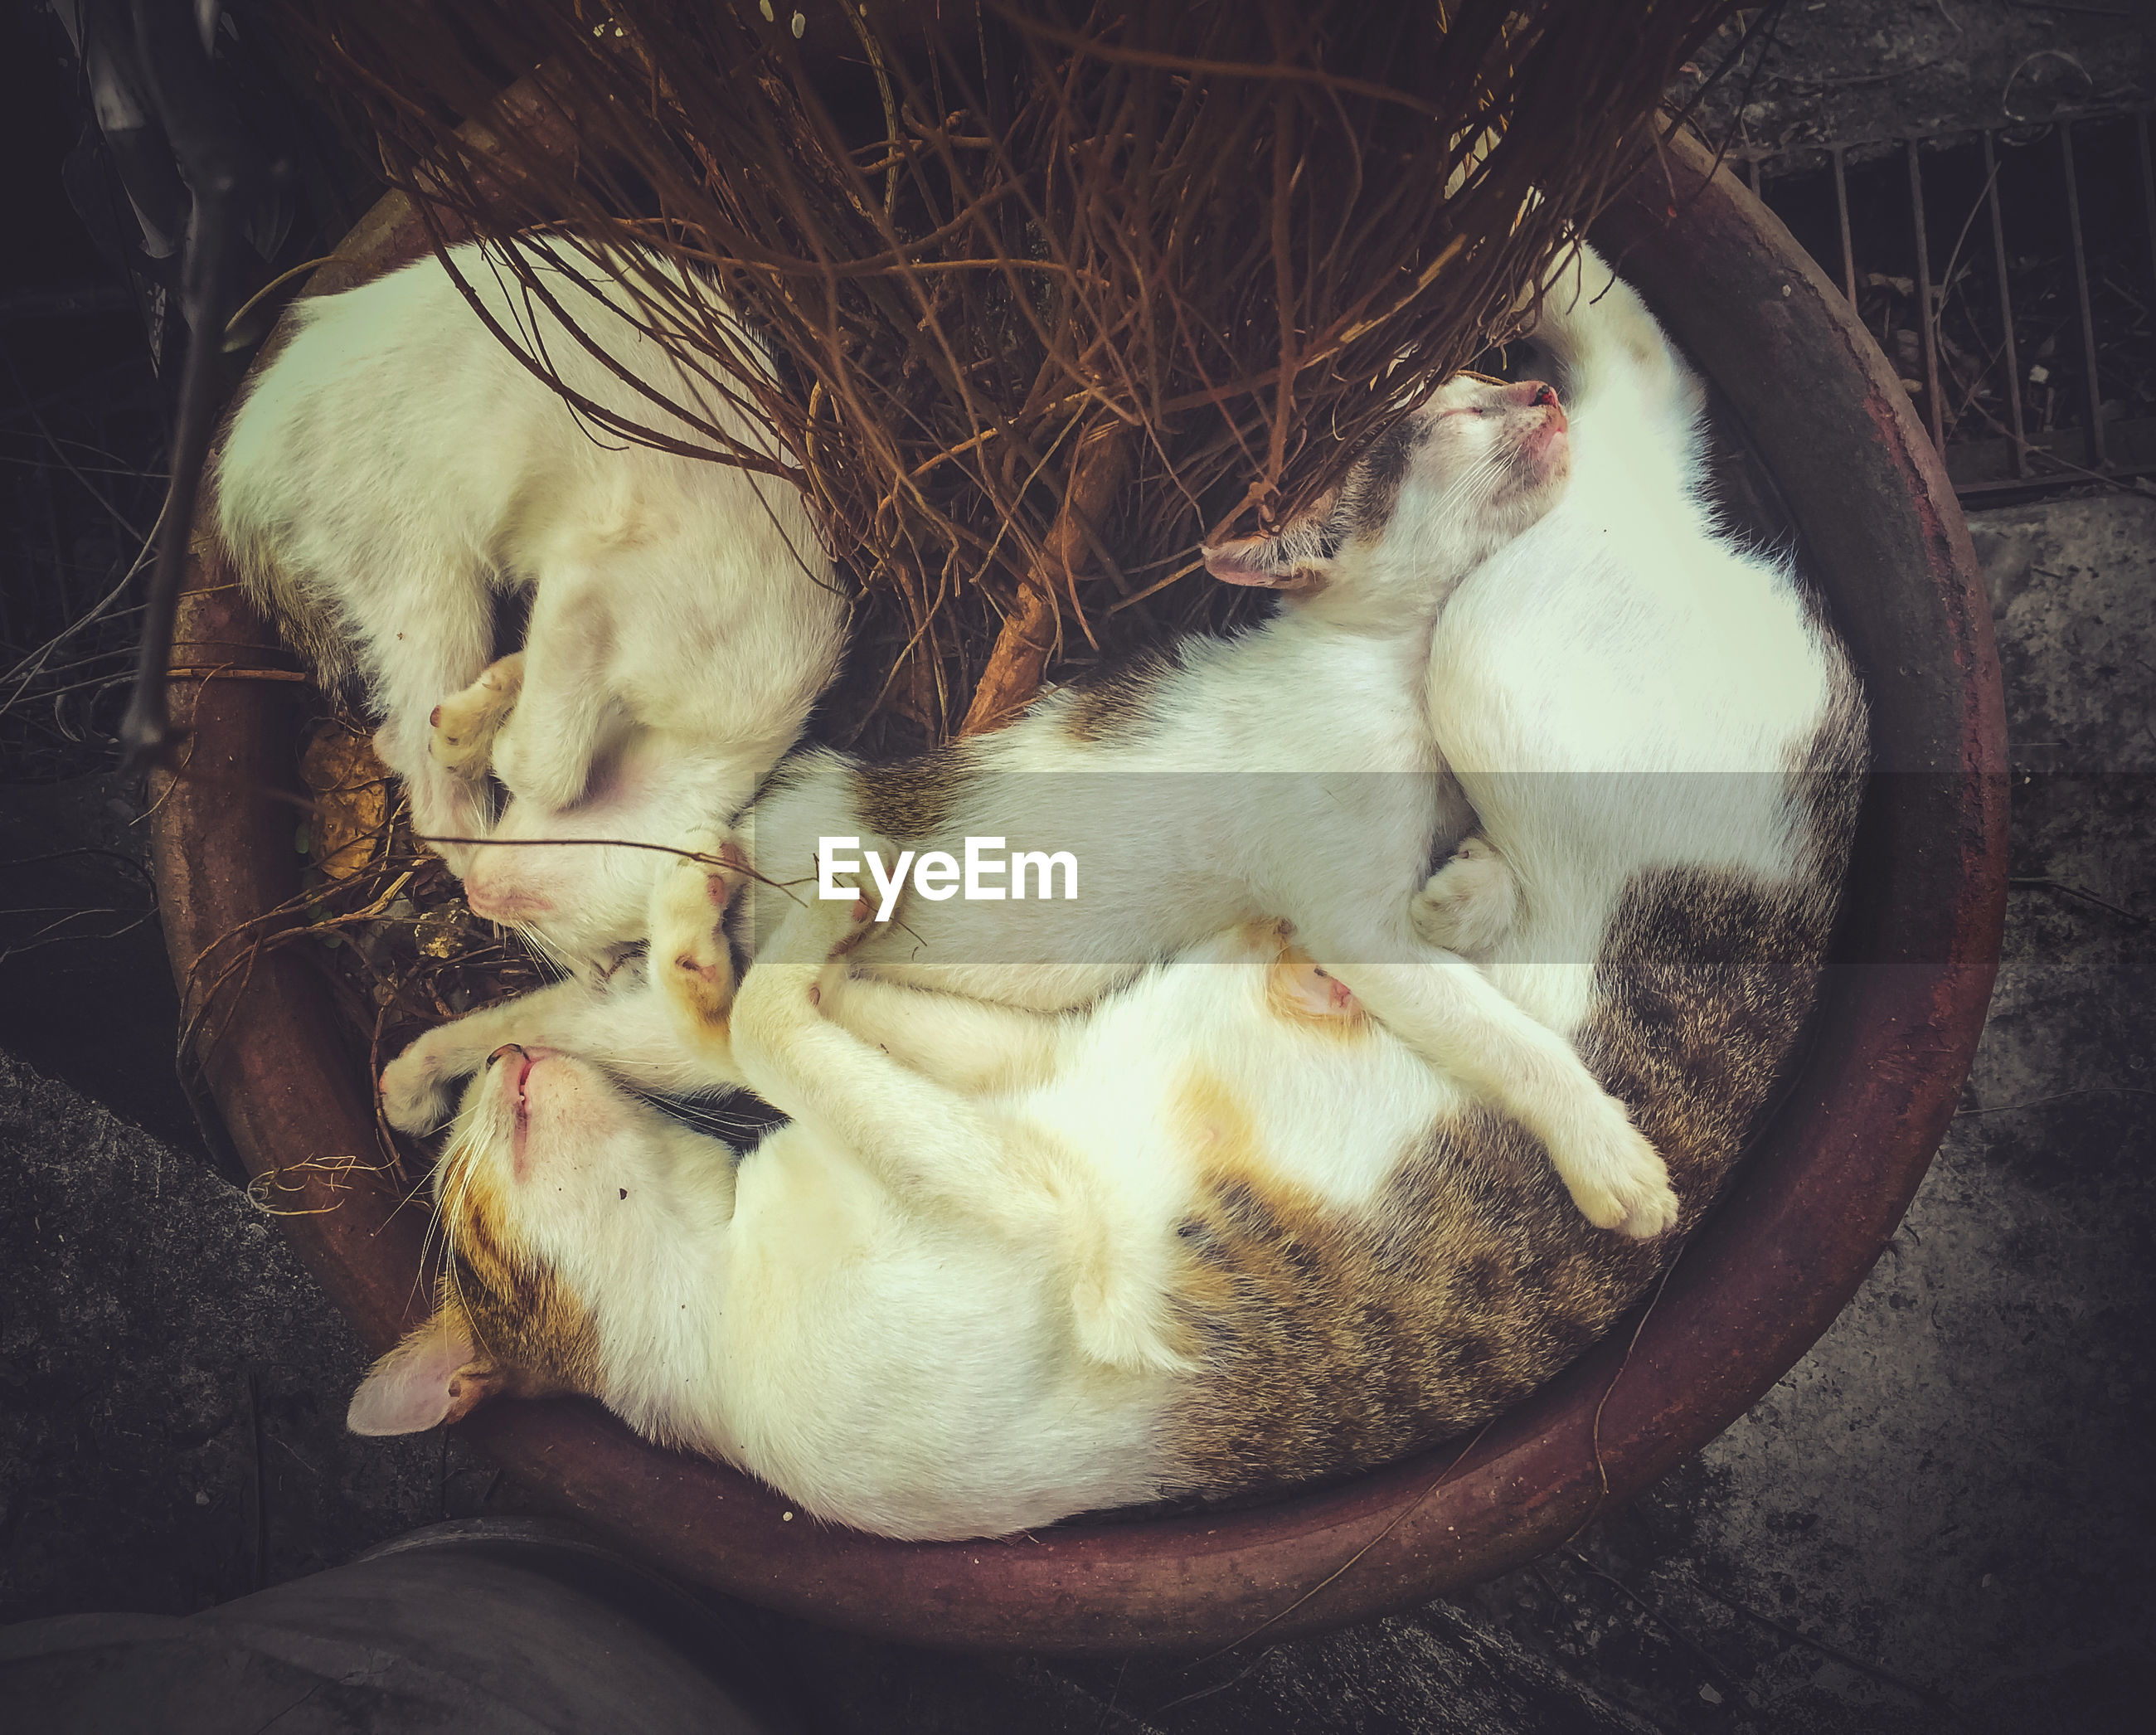 Directly above shot of cats sleeping in container